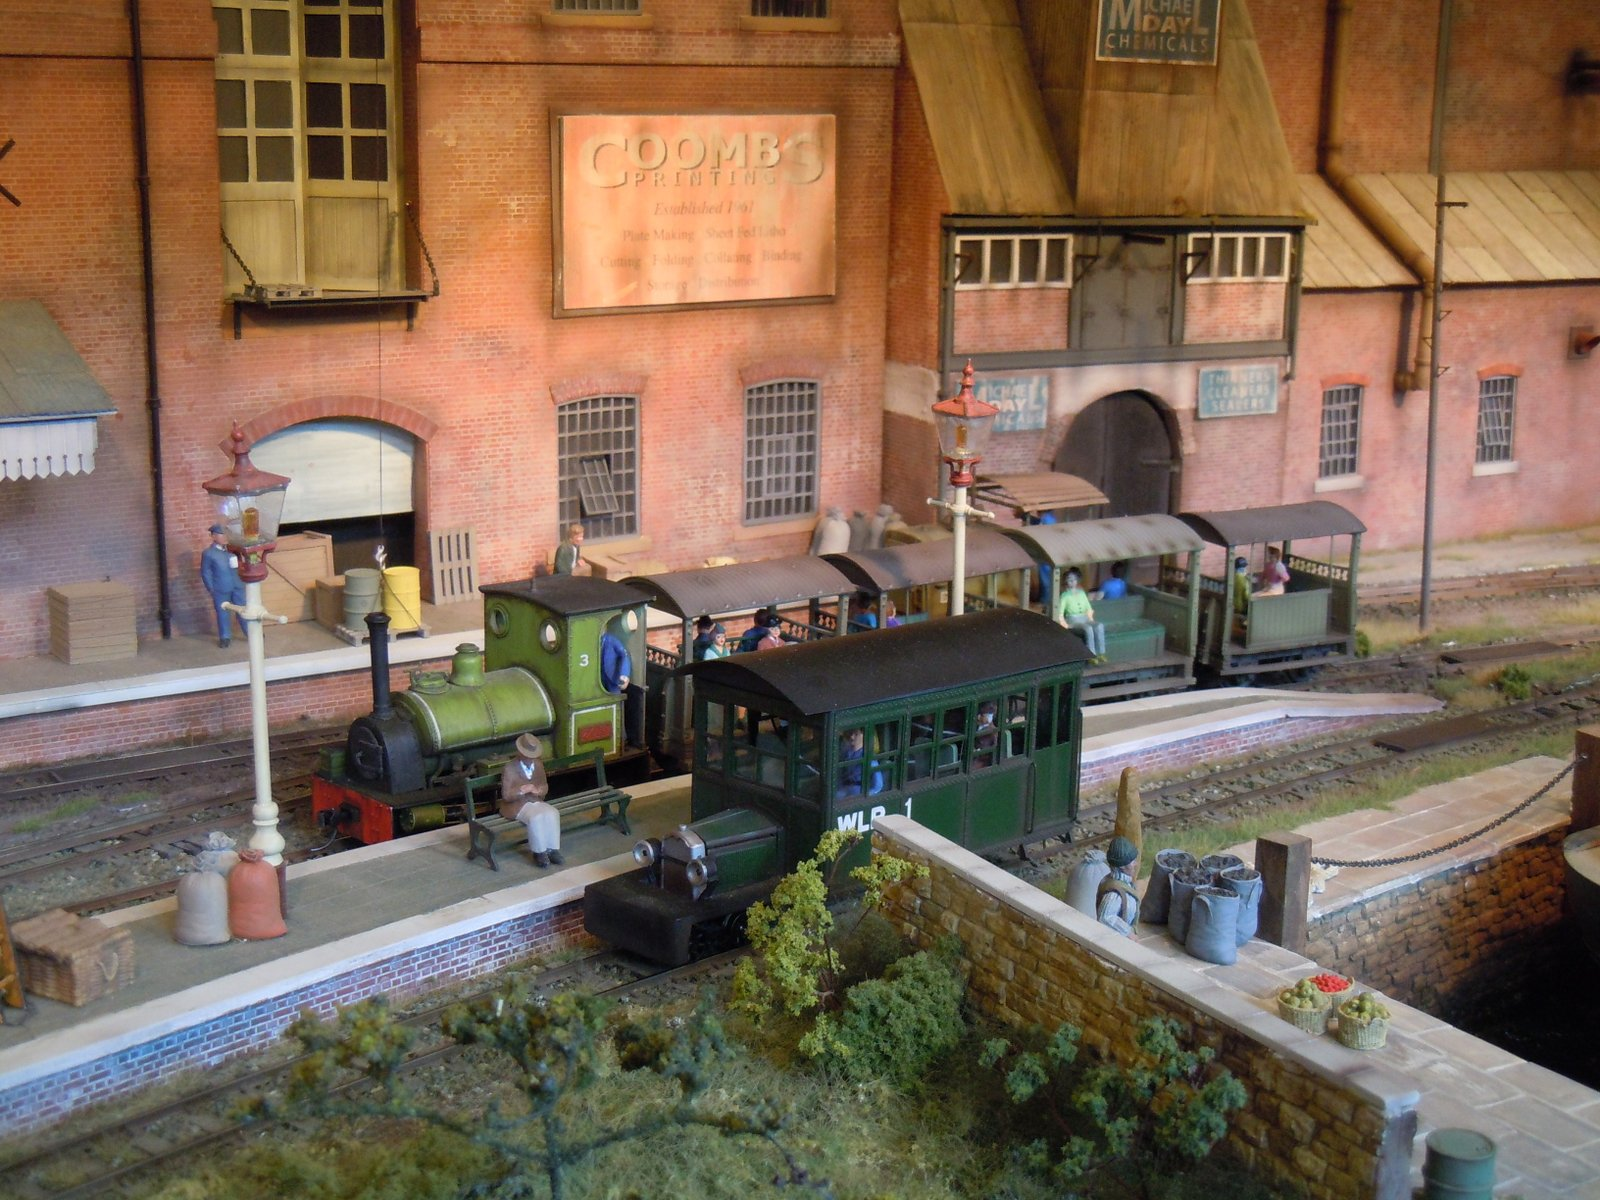 Michael's Model Railways: A family day out in Burgess Hill